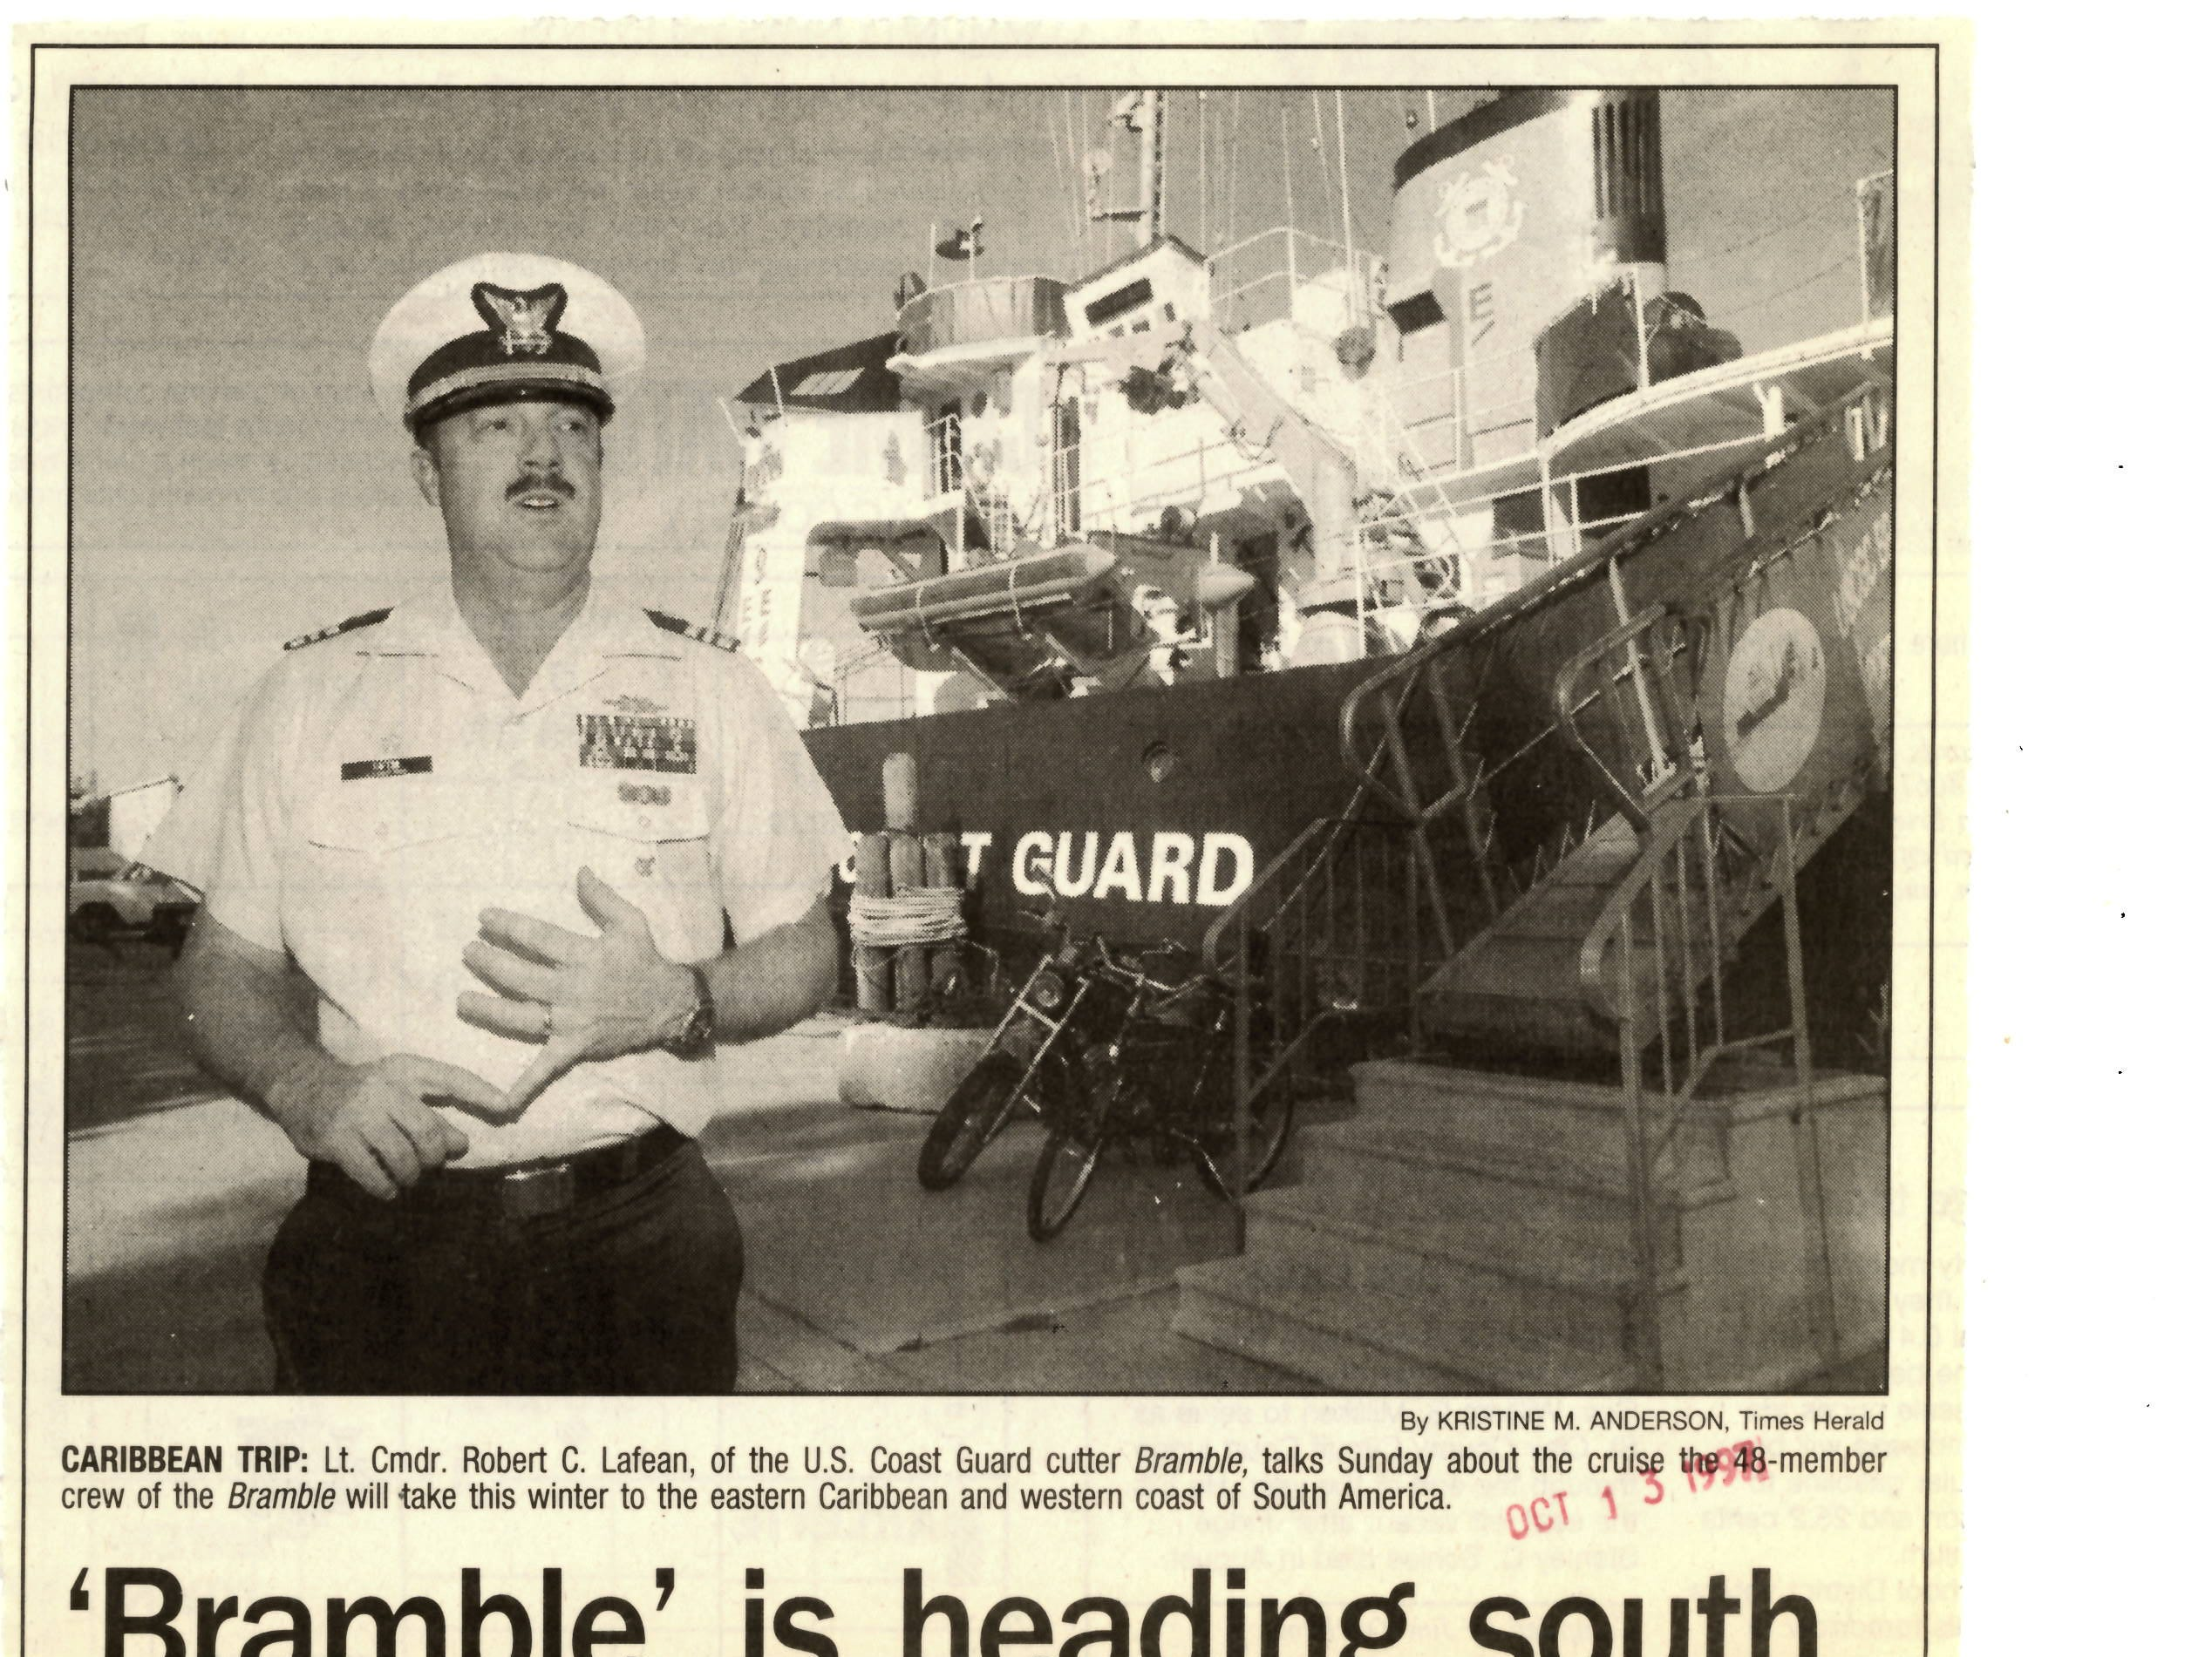 A newspaper clipping from October 1997 shows former USCGC Lt. Cmdr. Robert Lafean standing in front of the USCGC Bramble before the ship leaves to tour South America to help train other coast gards.